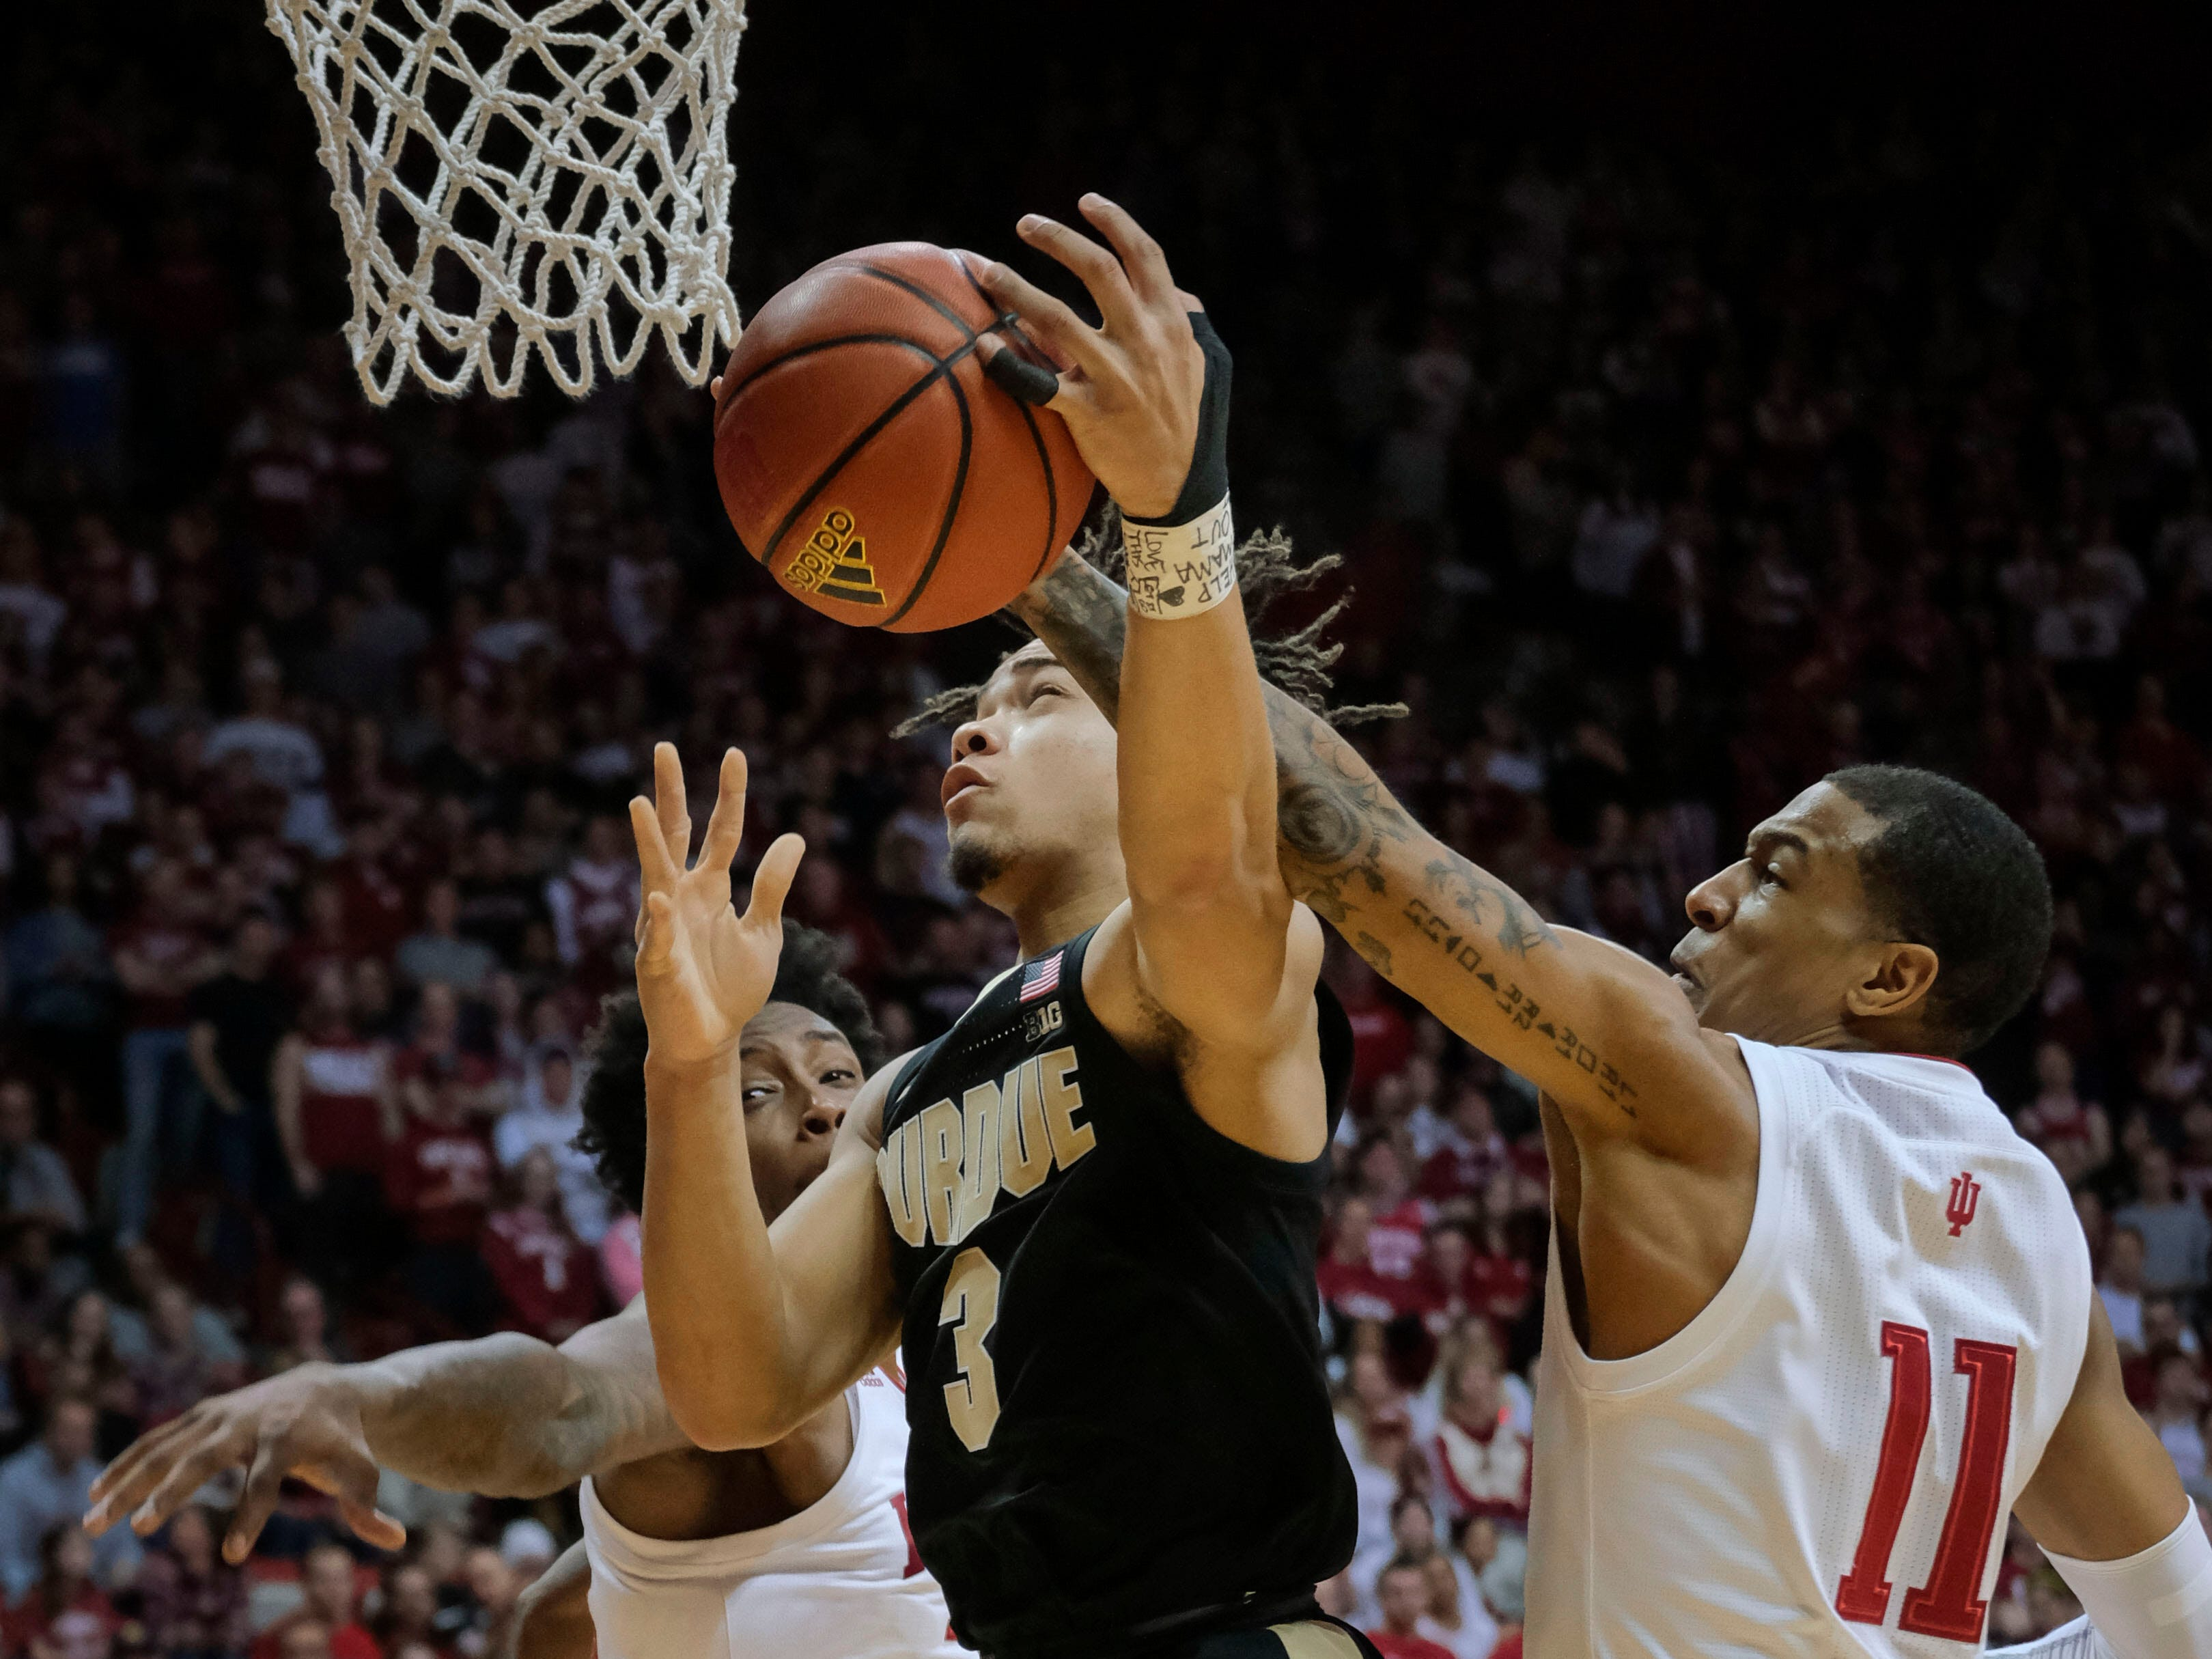 Purdue guard Carsen Edwards (3) tries to shoot as Indiana guard Devonte Green (11) defends during the first half of an NCAA college basketball game in Bloomington, Ind., Tuesday, Feb. 19, 2019.